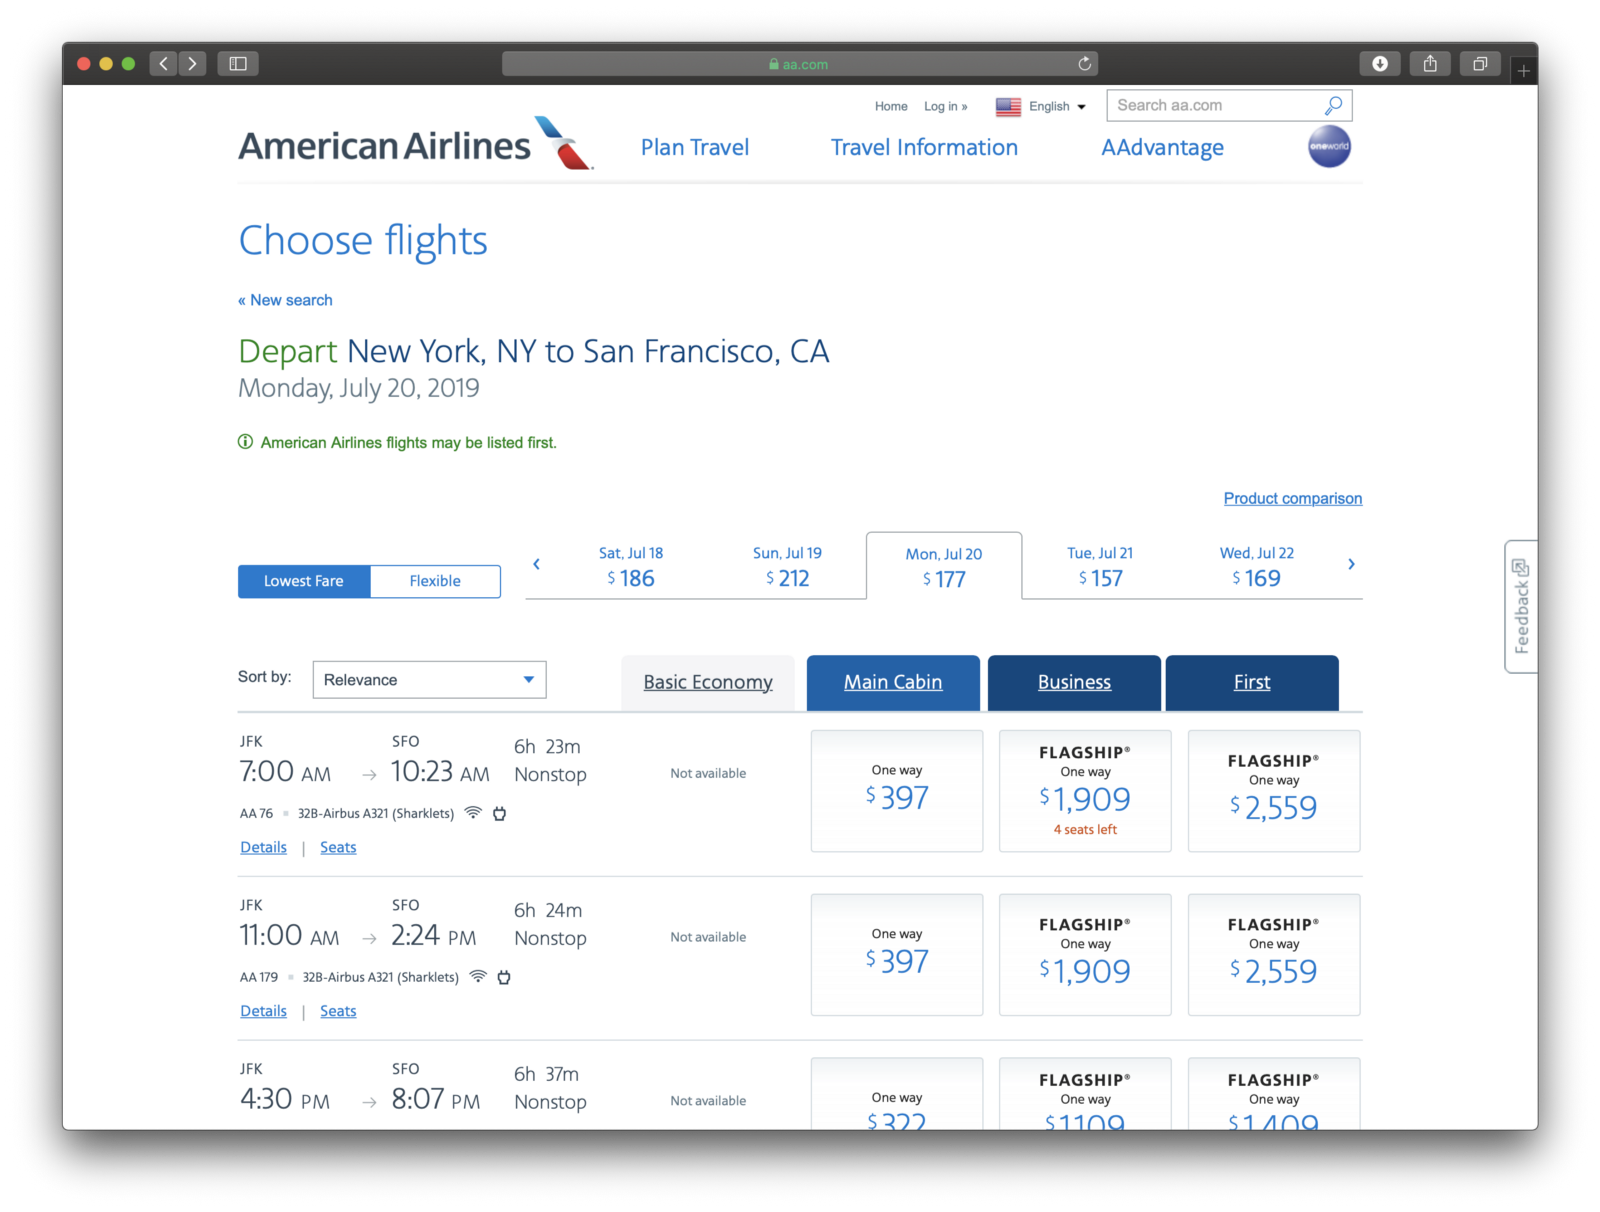 Prices for American Airlines for July 2019